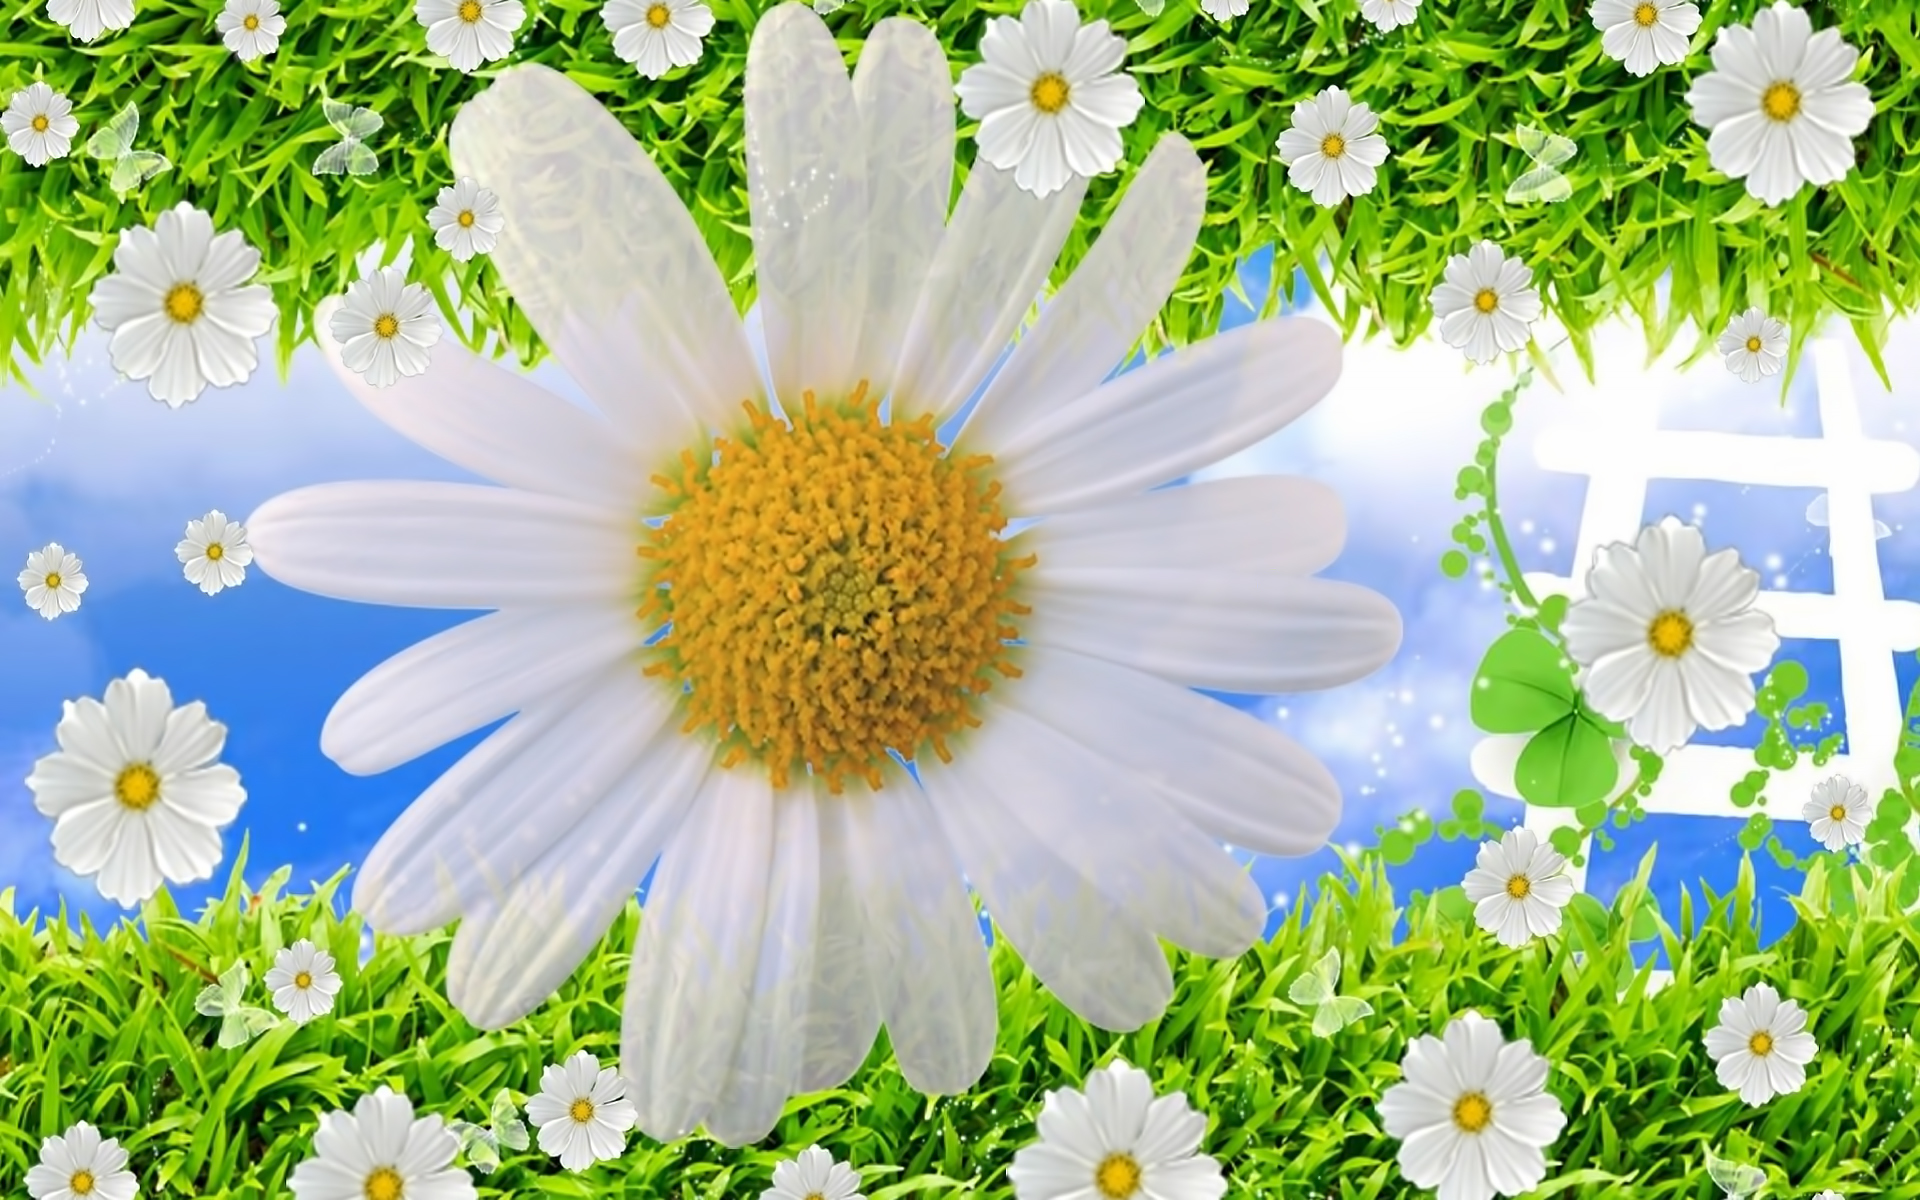 29883 download wallpaper Plants, Flowers, Background, Camomile screensavers and pictures for free